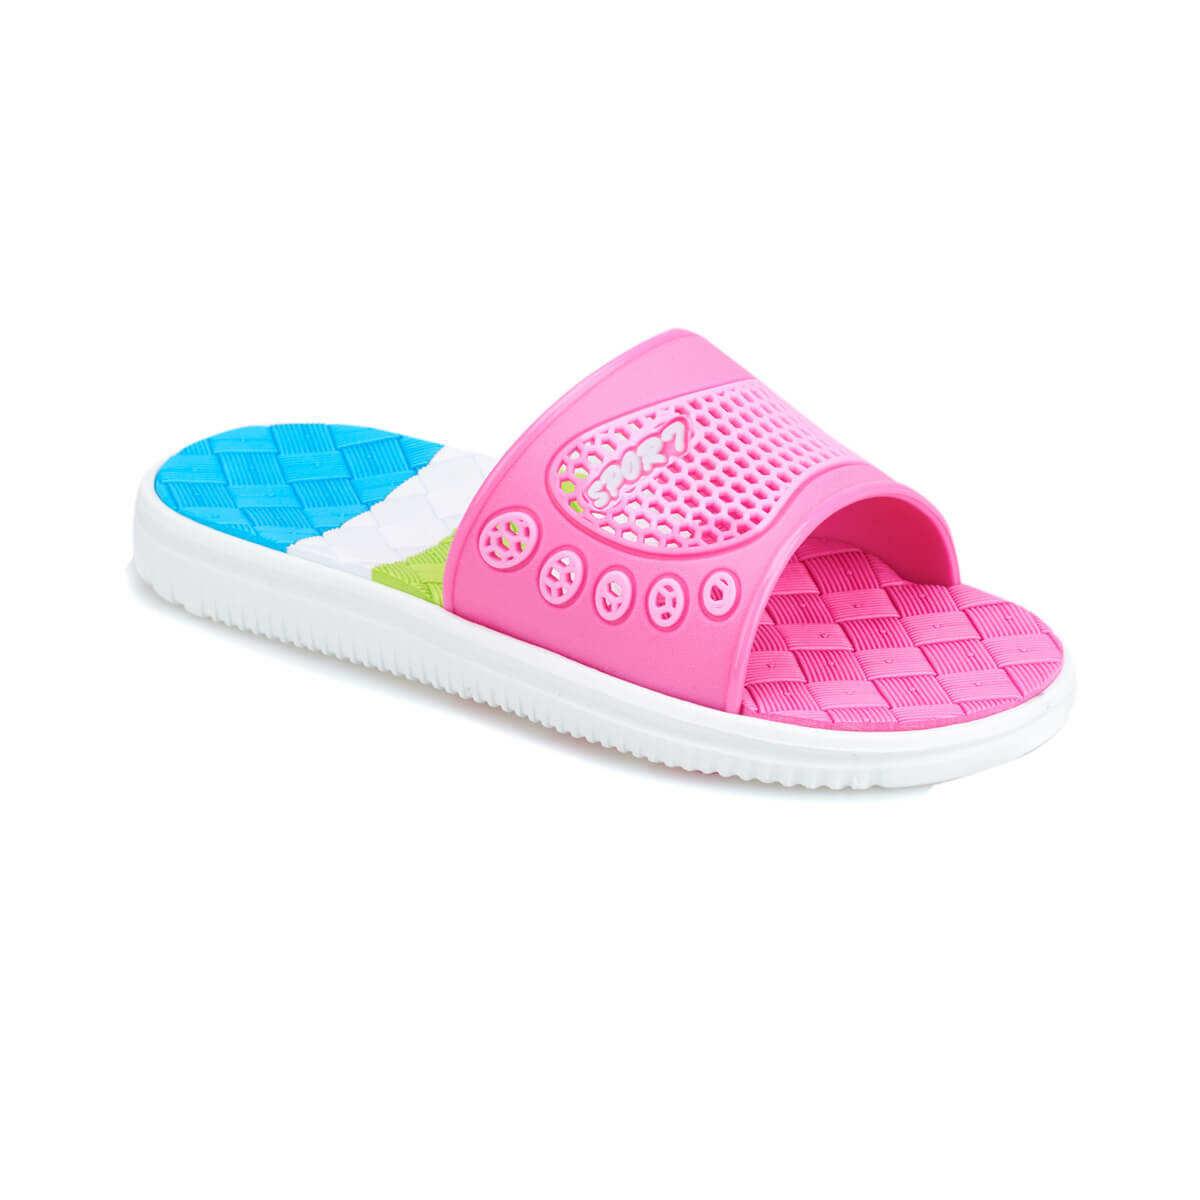 FLO NAGEL Fuchsia Male Child Slippers KINETIX